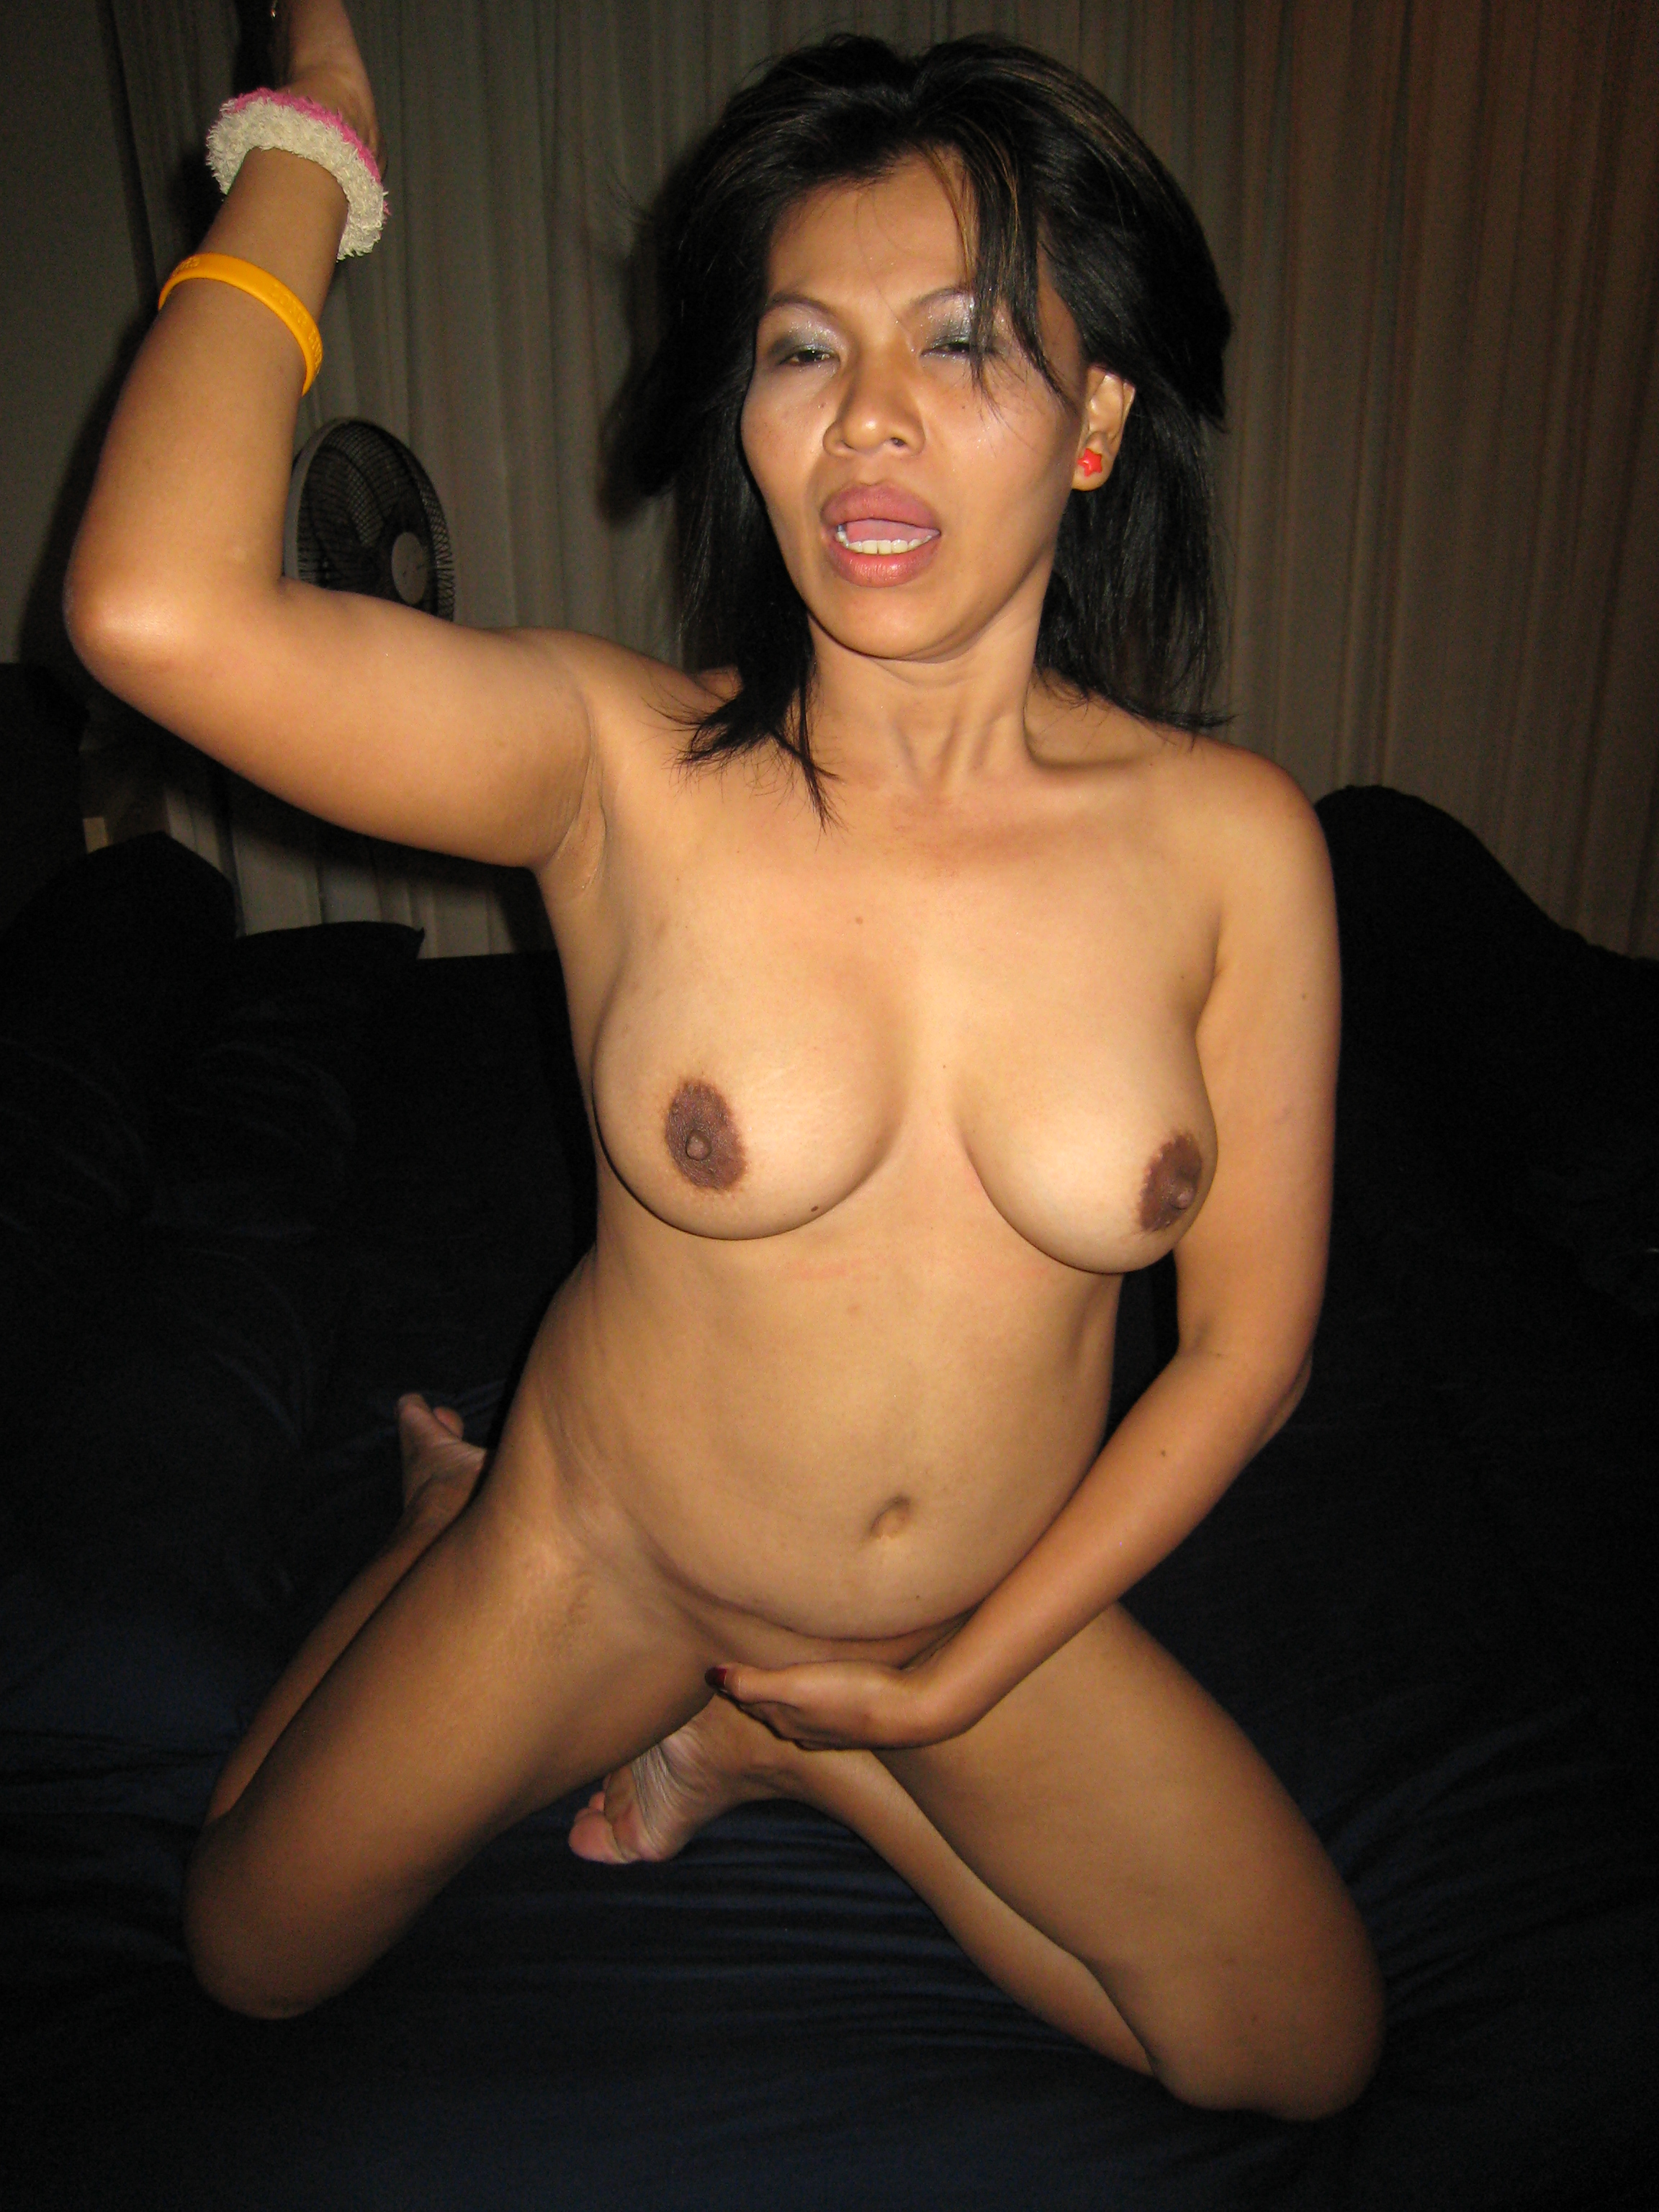 Mature women stretched out pussy